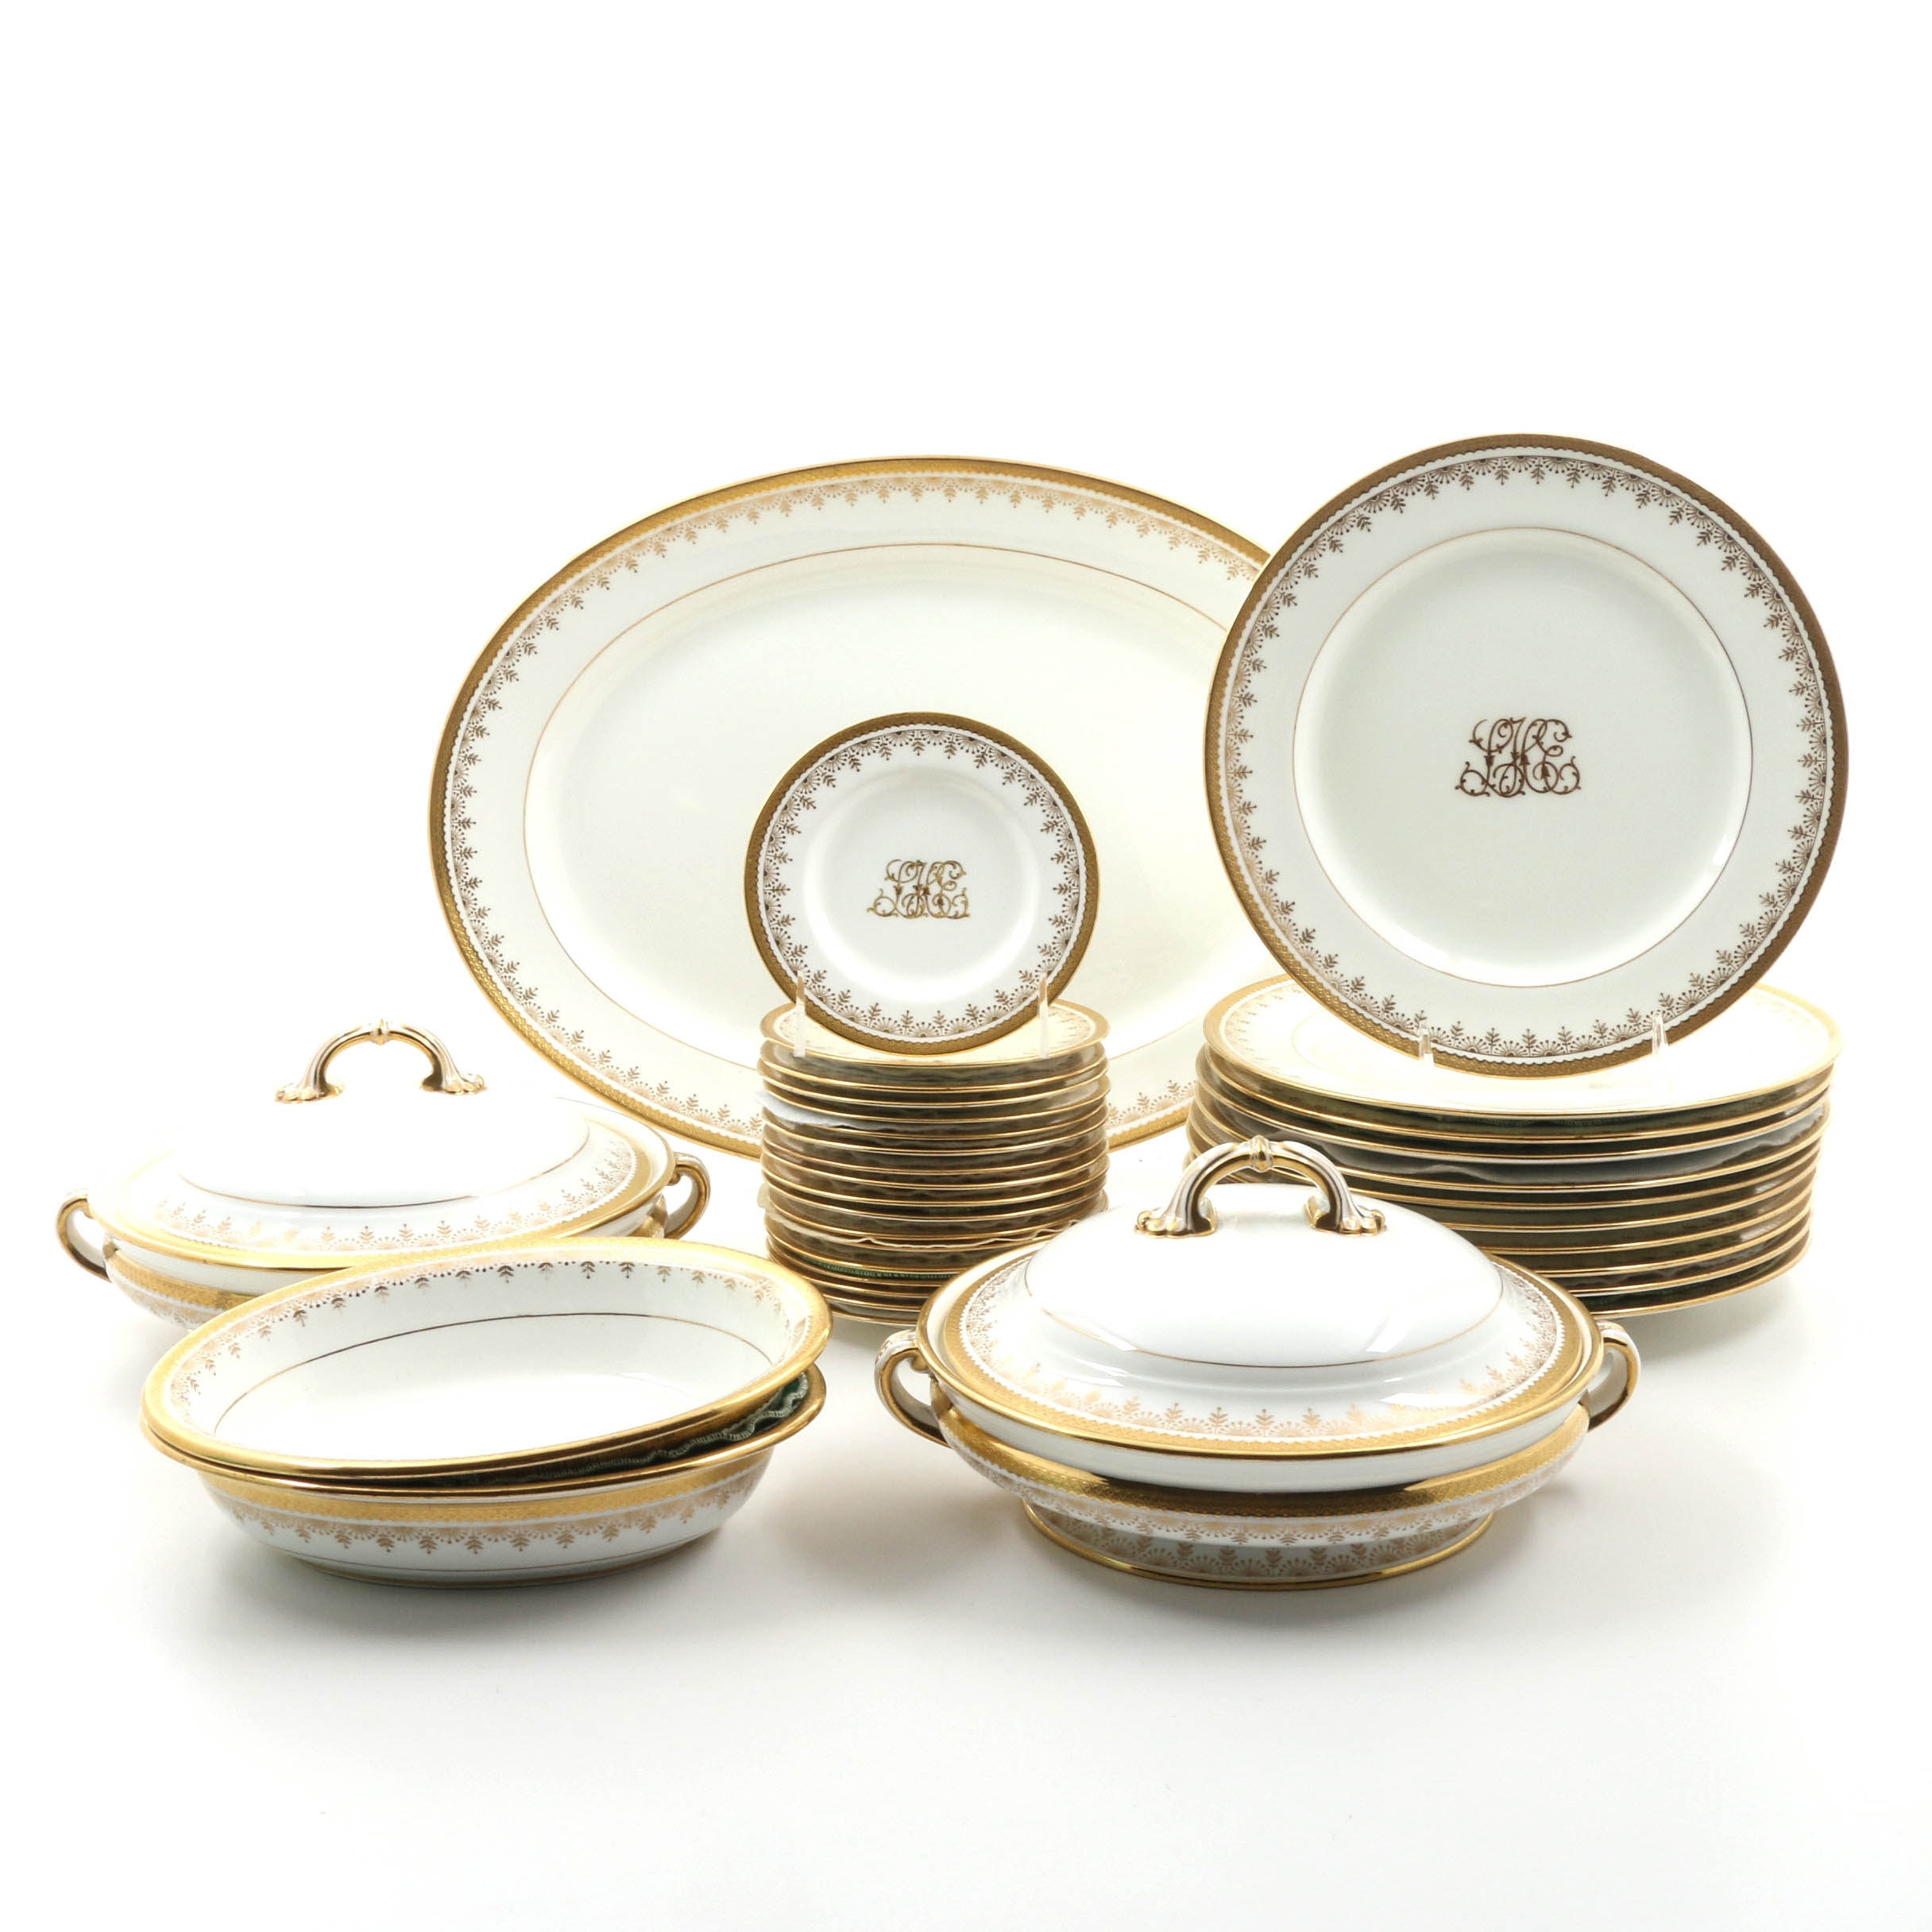 Vintage Minton Gold and White Dinnerware with Monogram ...  sc 1 st  EBTH.com & Vintage Minton Gold and White Dinnerware with Monogram : EBTH